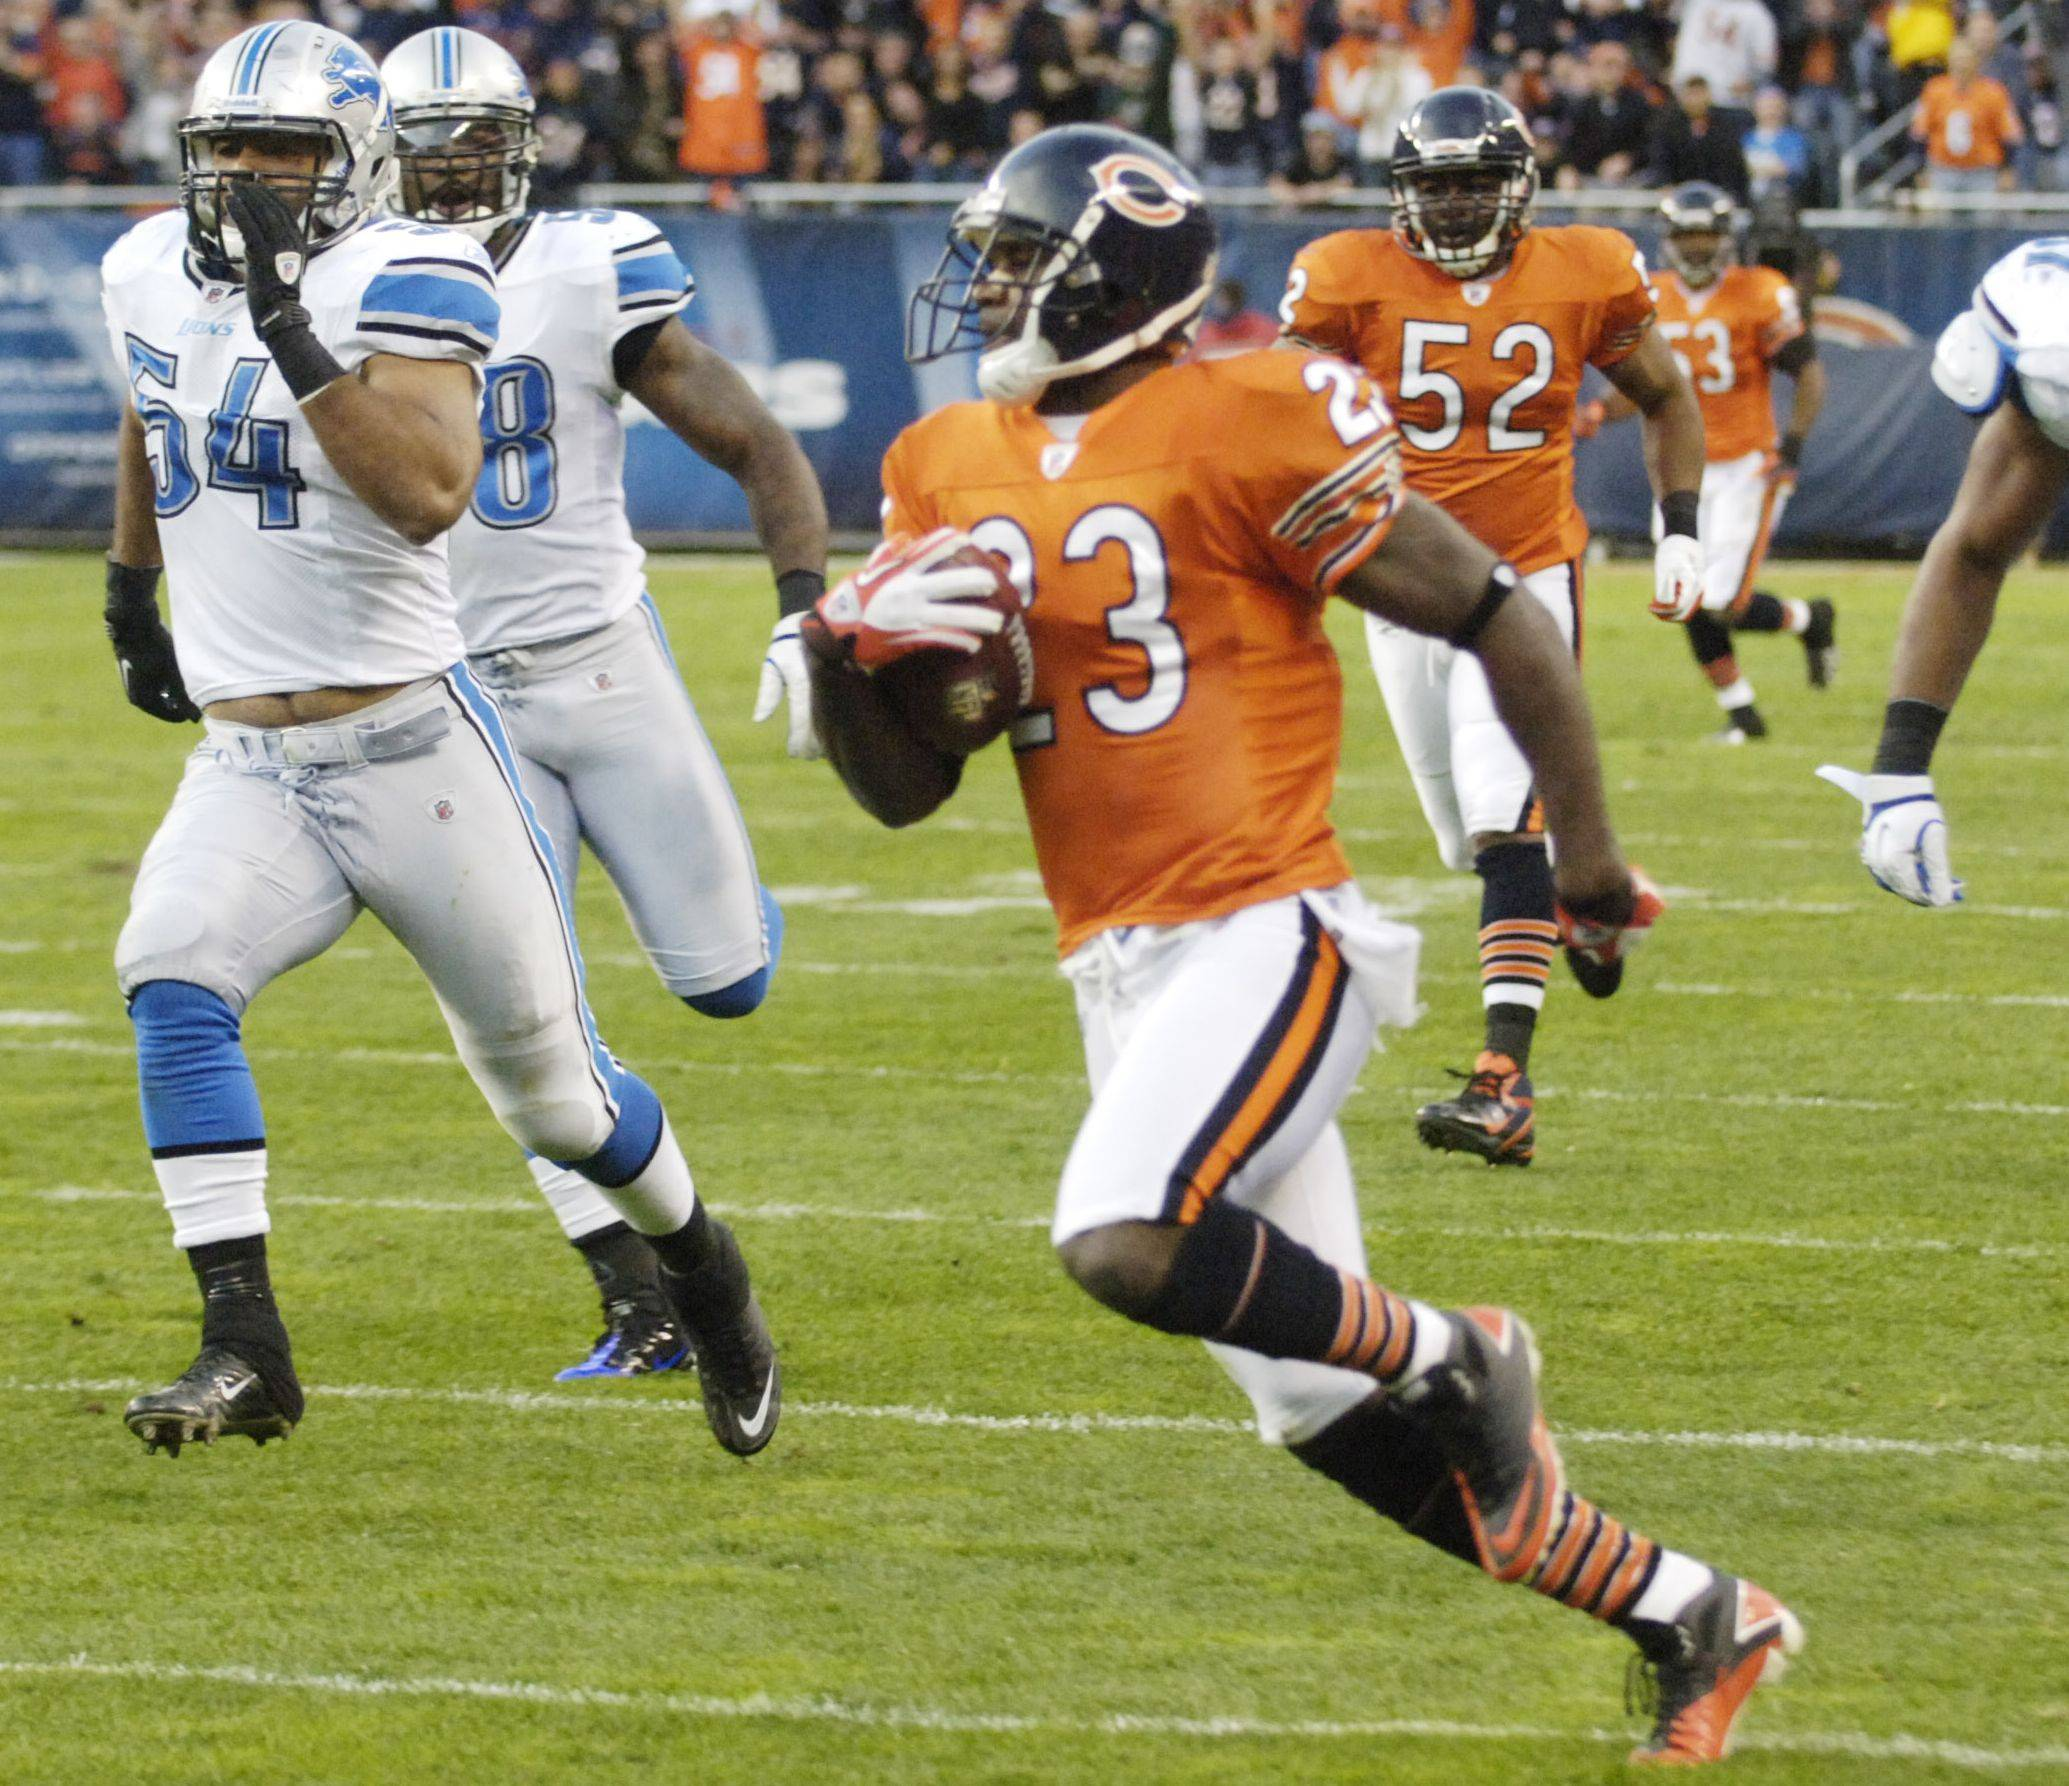 Lions must feel sick after kicking to Hester